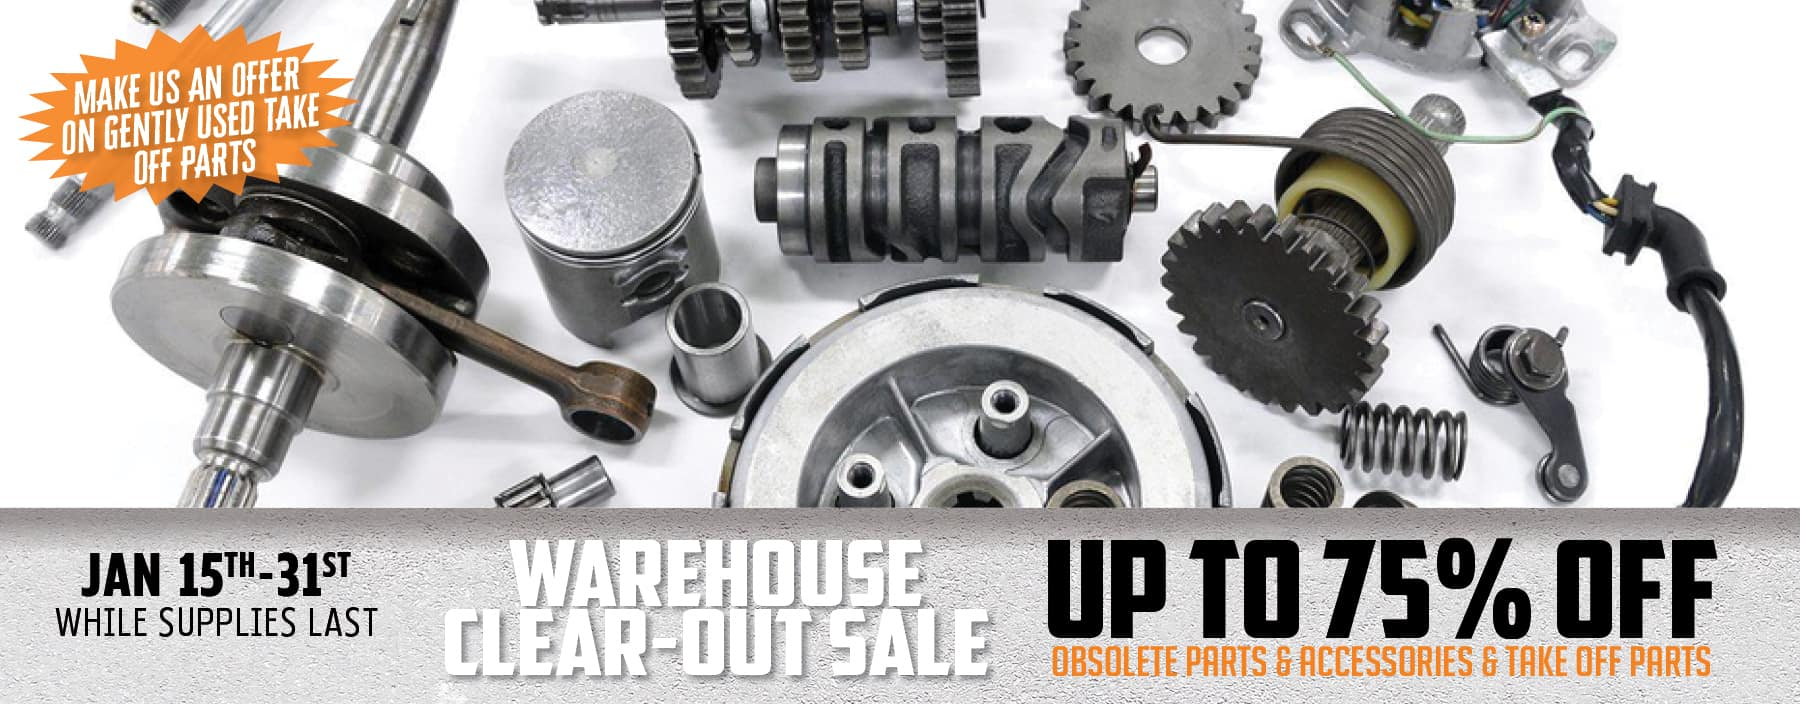 CA01_Warehouse_Clearout_1800x704_FB_BBB